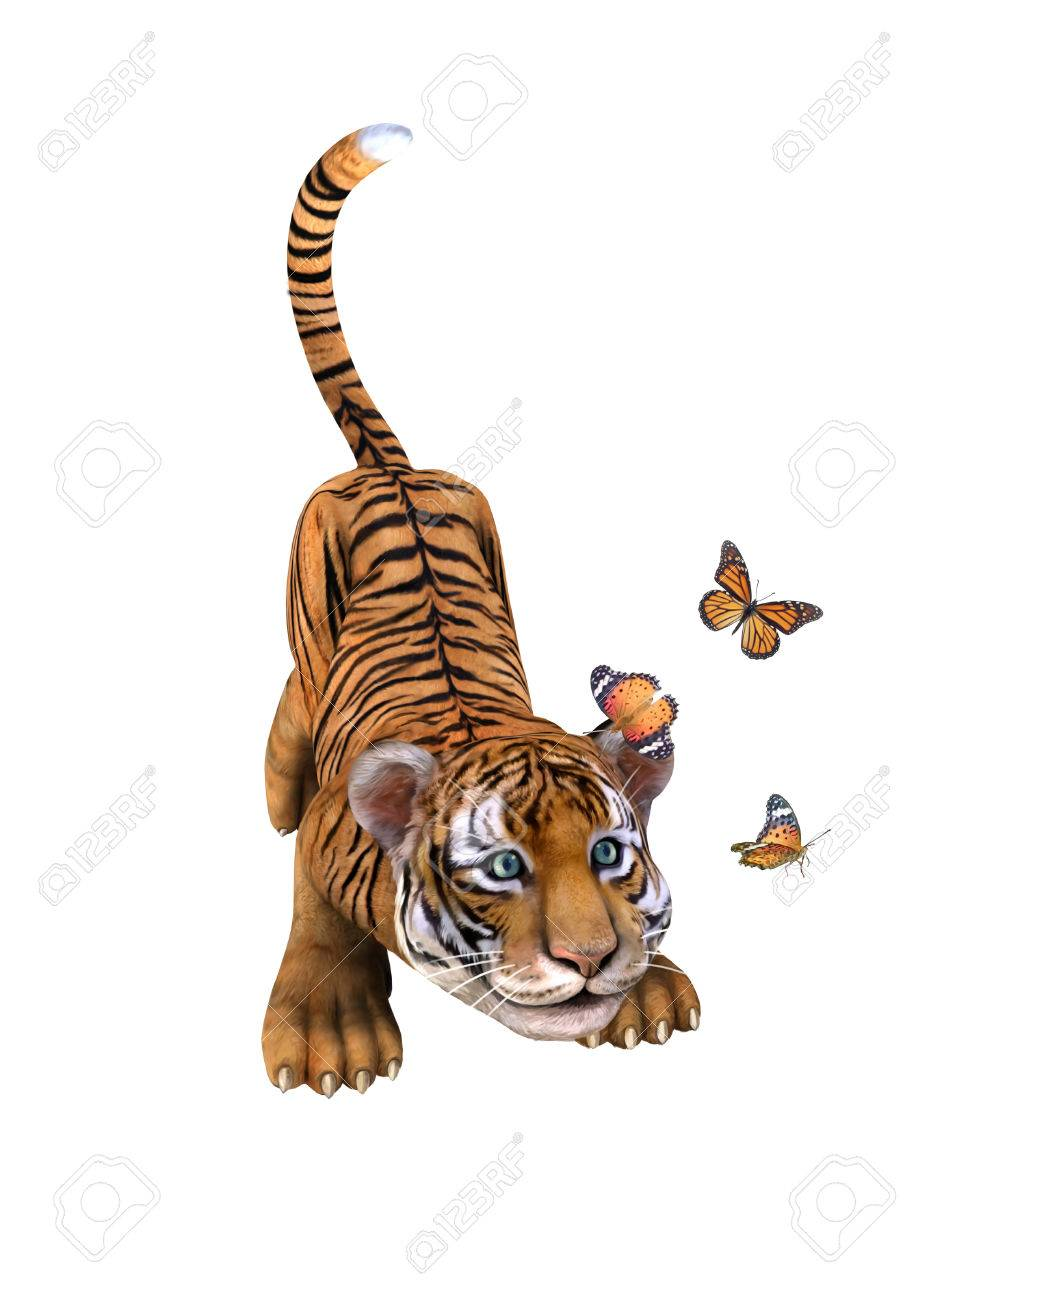 Cute tiger cub playing with butterflie illustration stock photo cute tiger cub playing with butterflie illustration stock illustration 44944922 thecheapjerseys Image collections